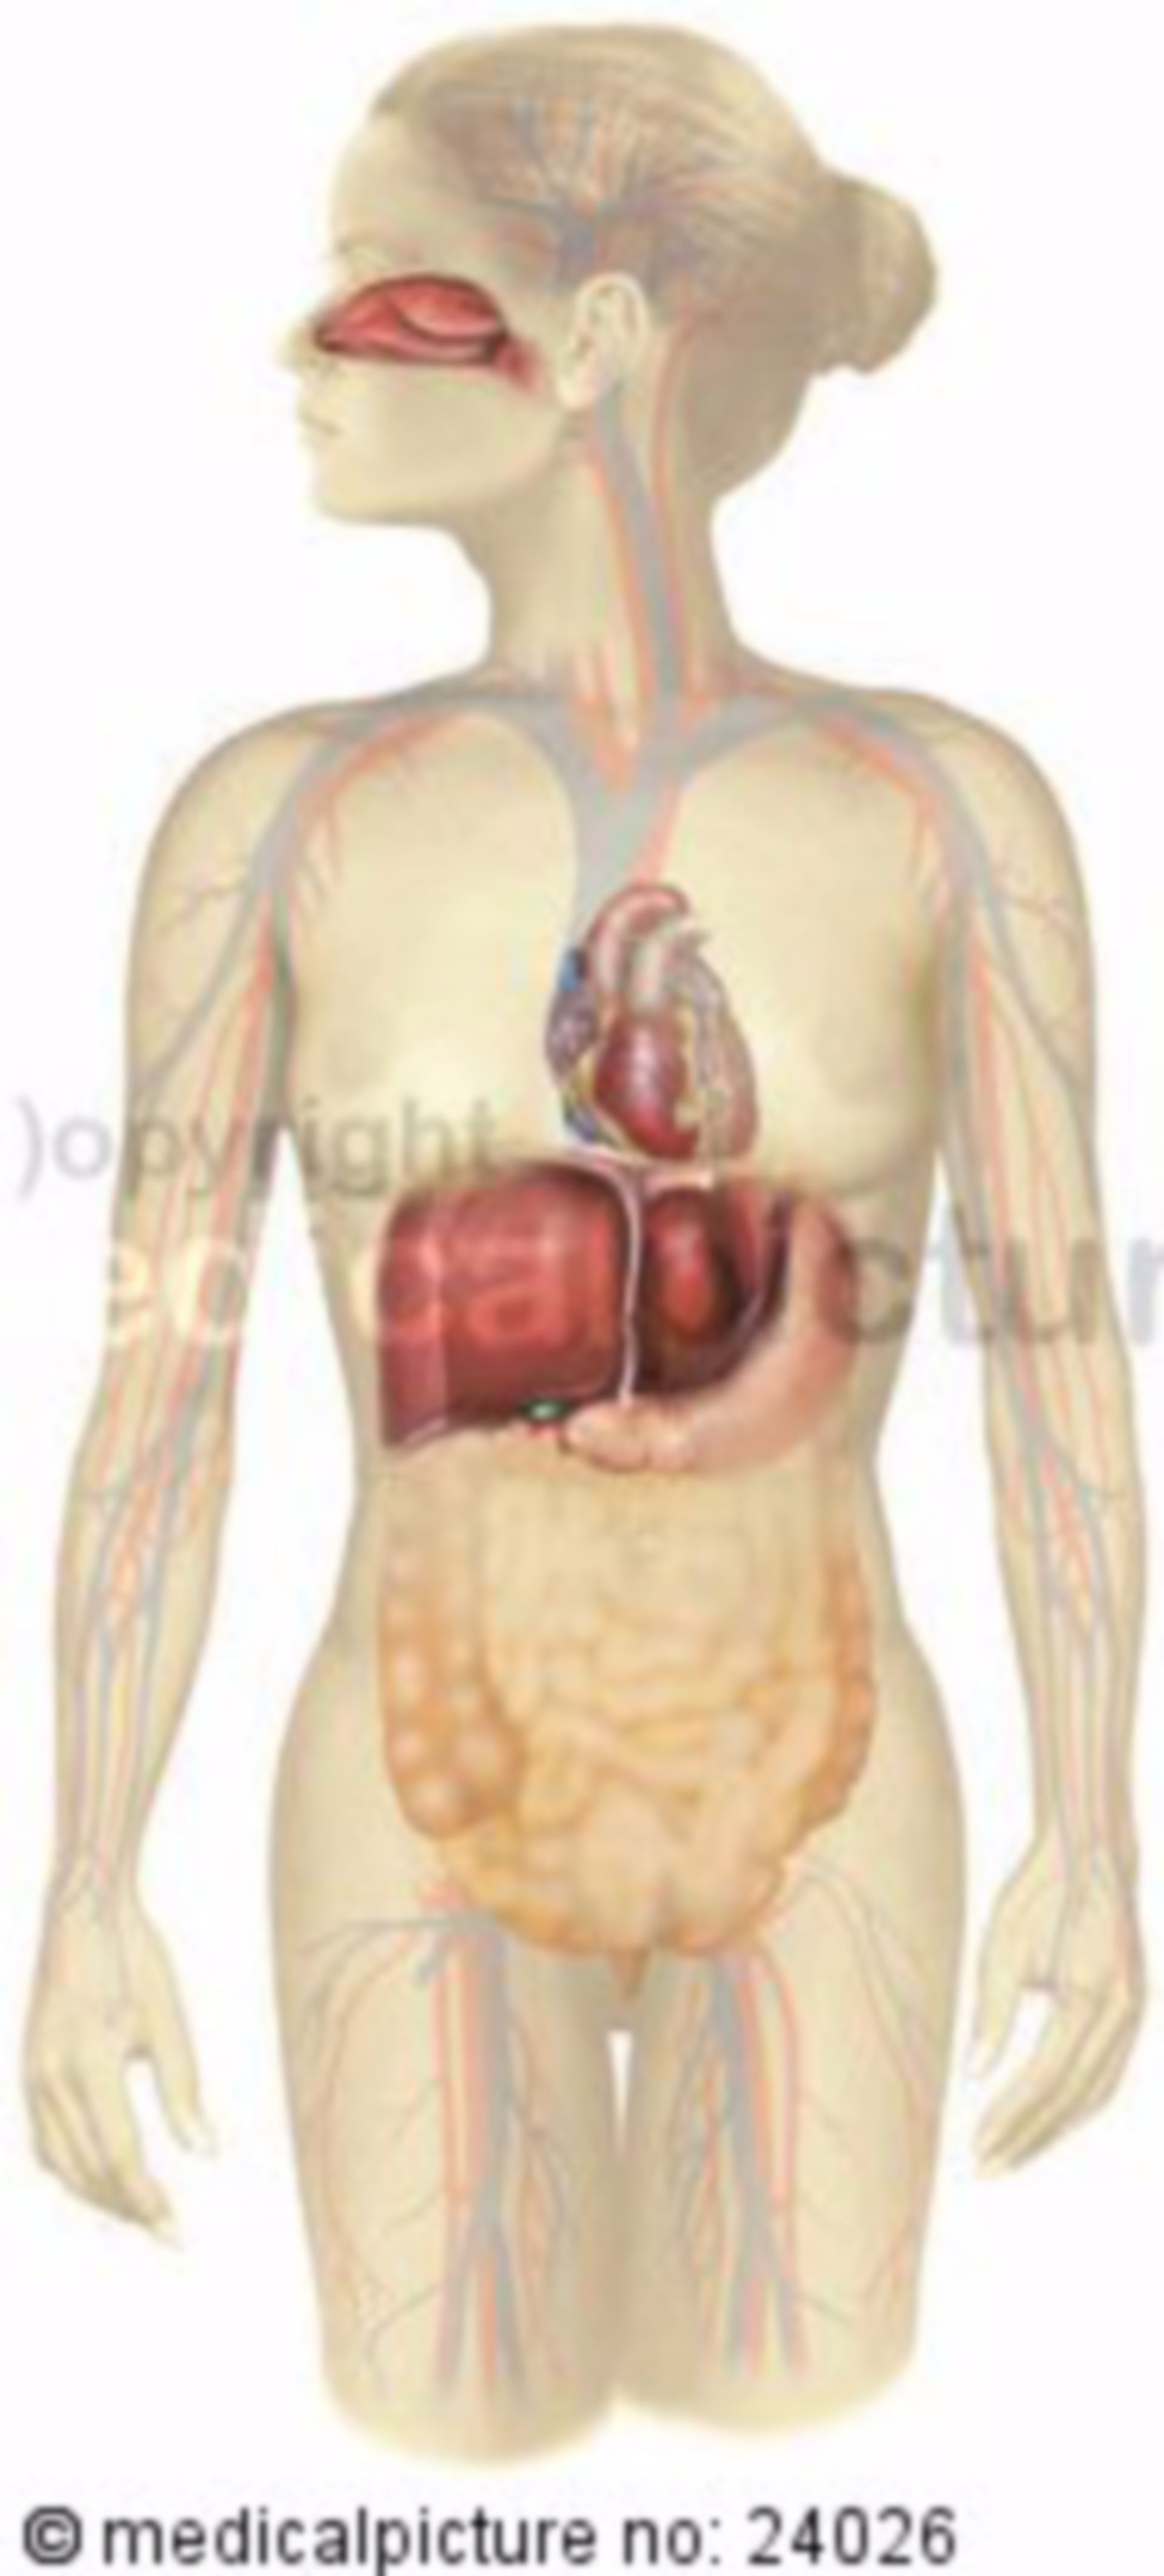 Organs and their placement in the body